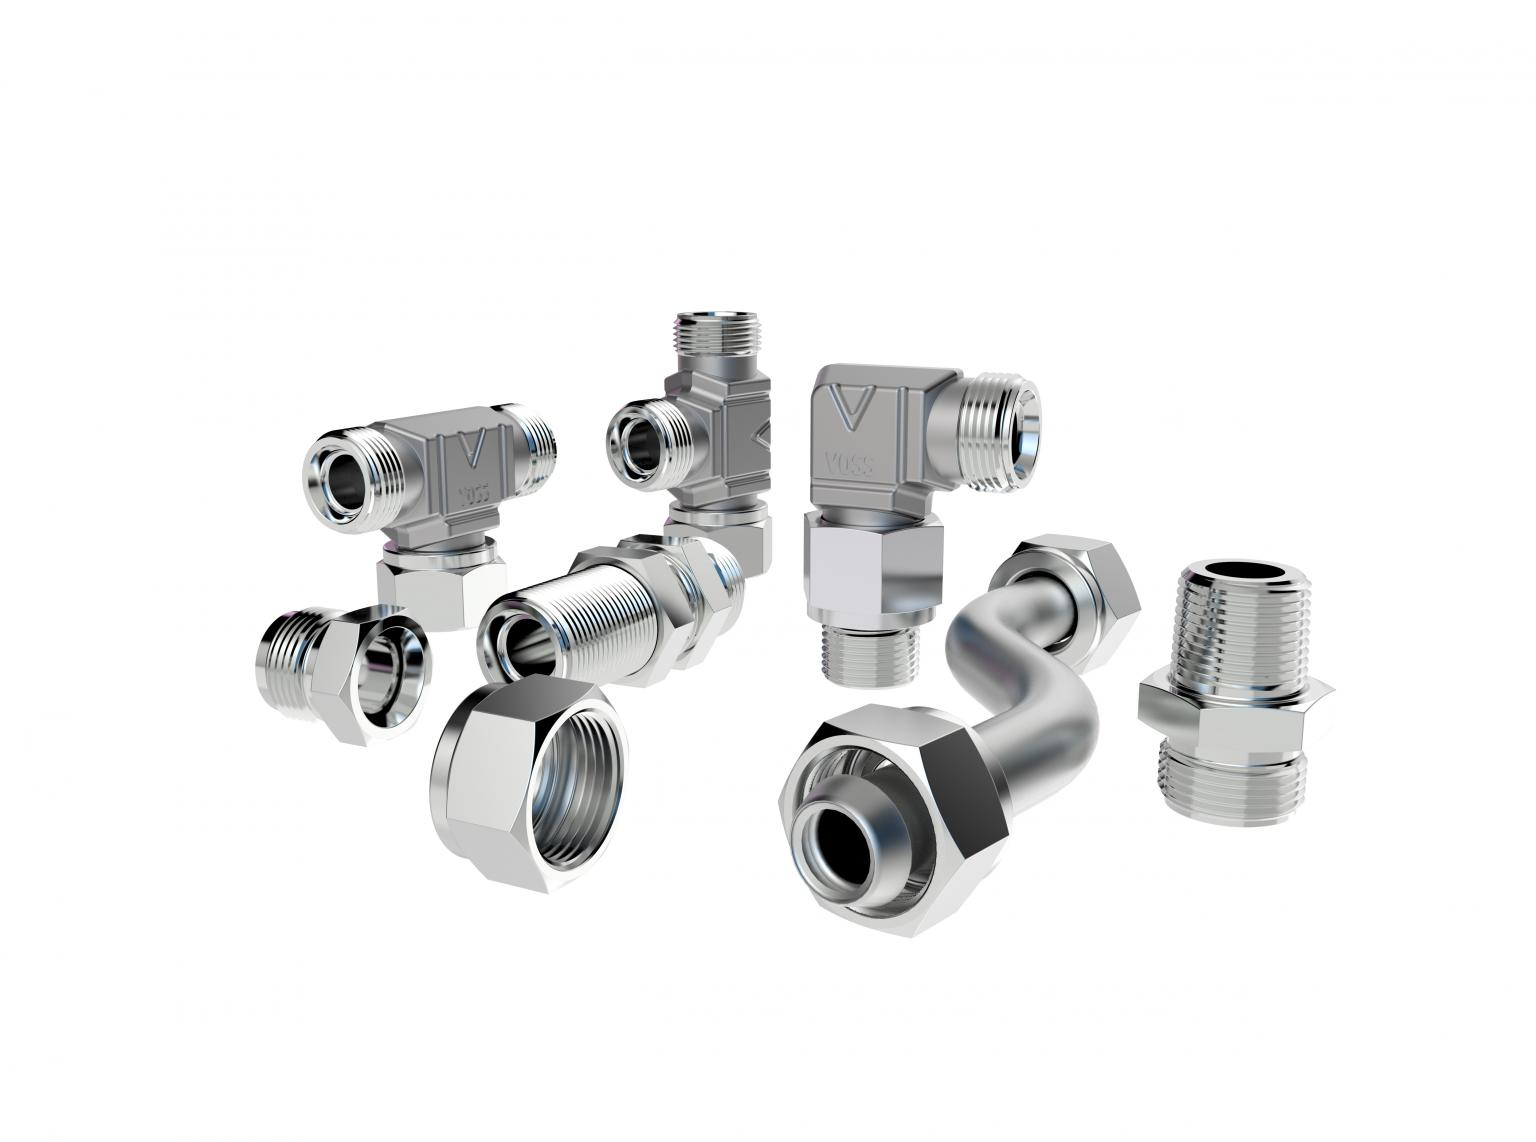 The new tube coupling system VOSSLok40 from VOSS Fluid is a high-quality alternative to ferrule fitting and is suitable for various applications and sectors